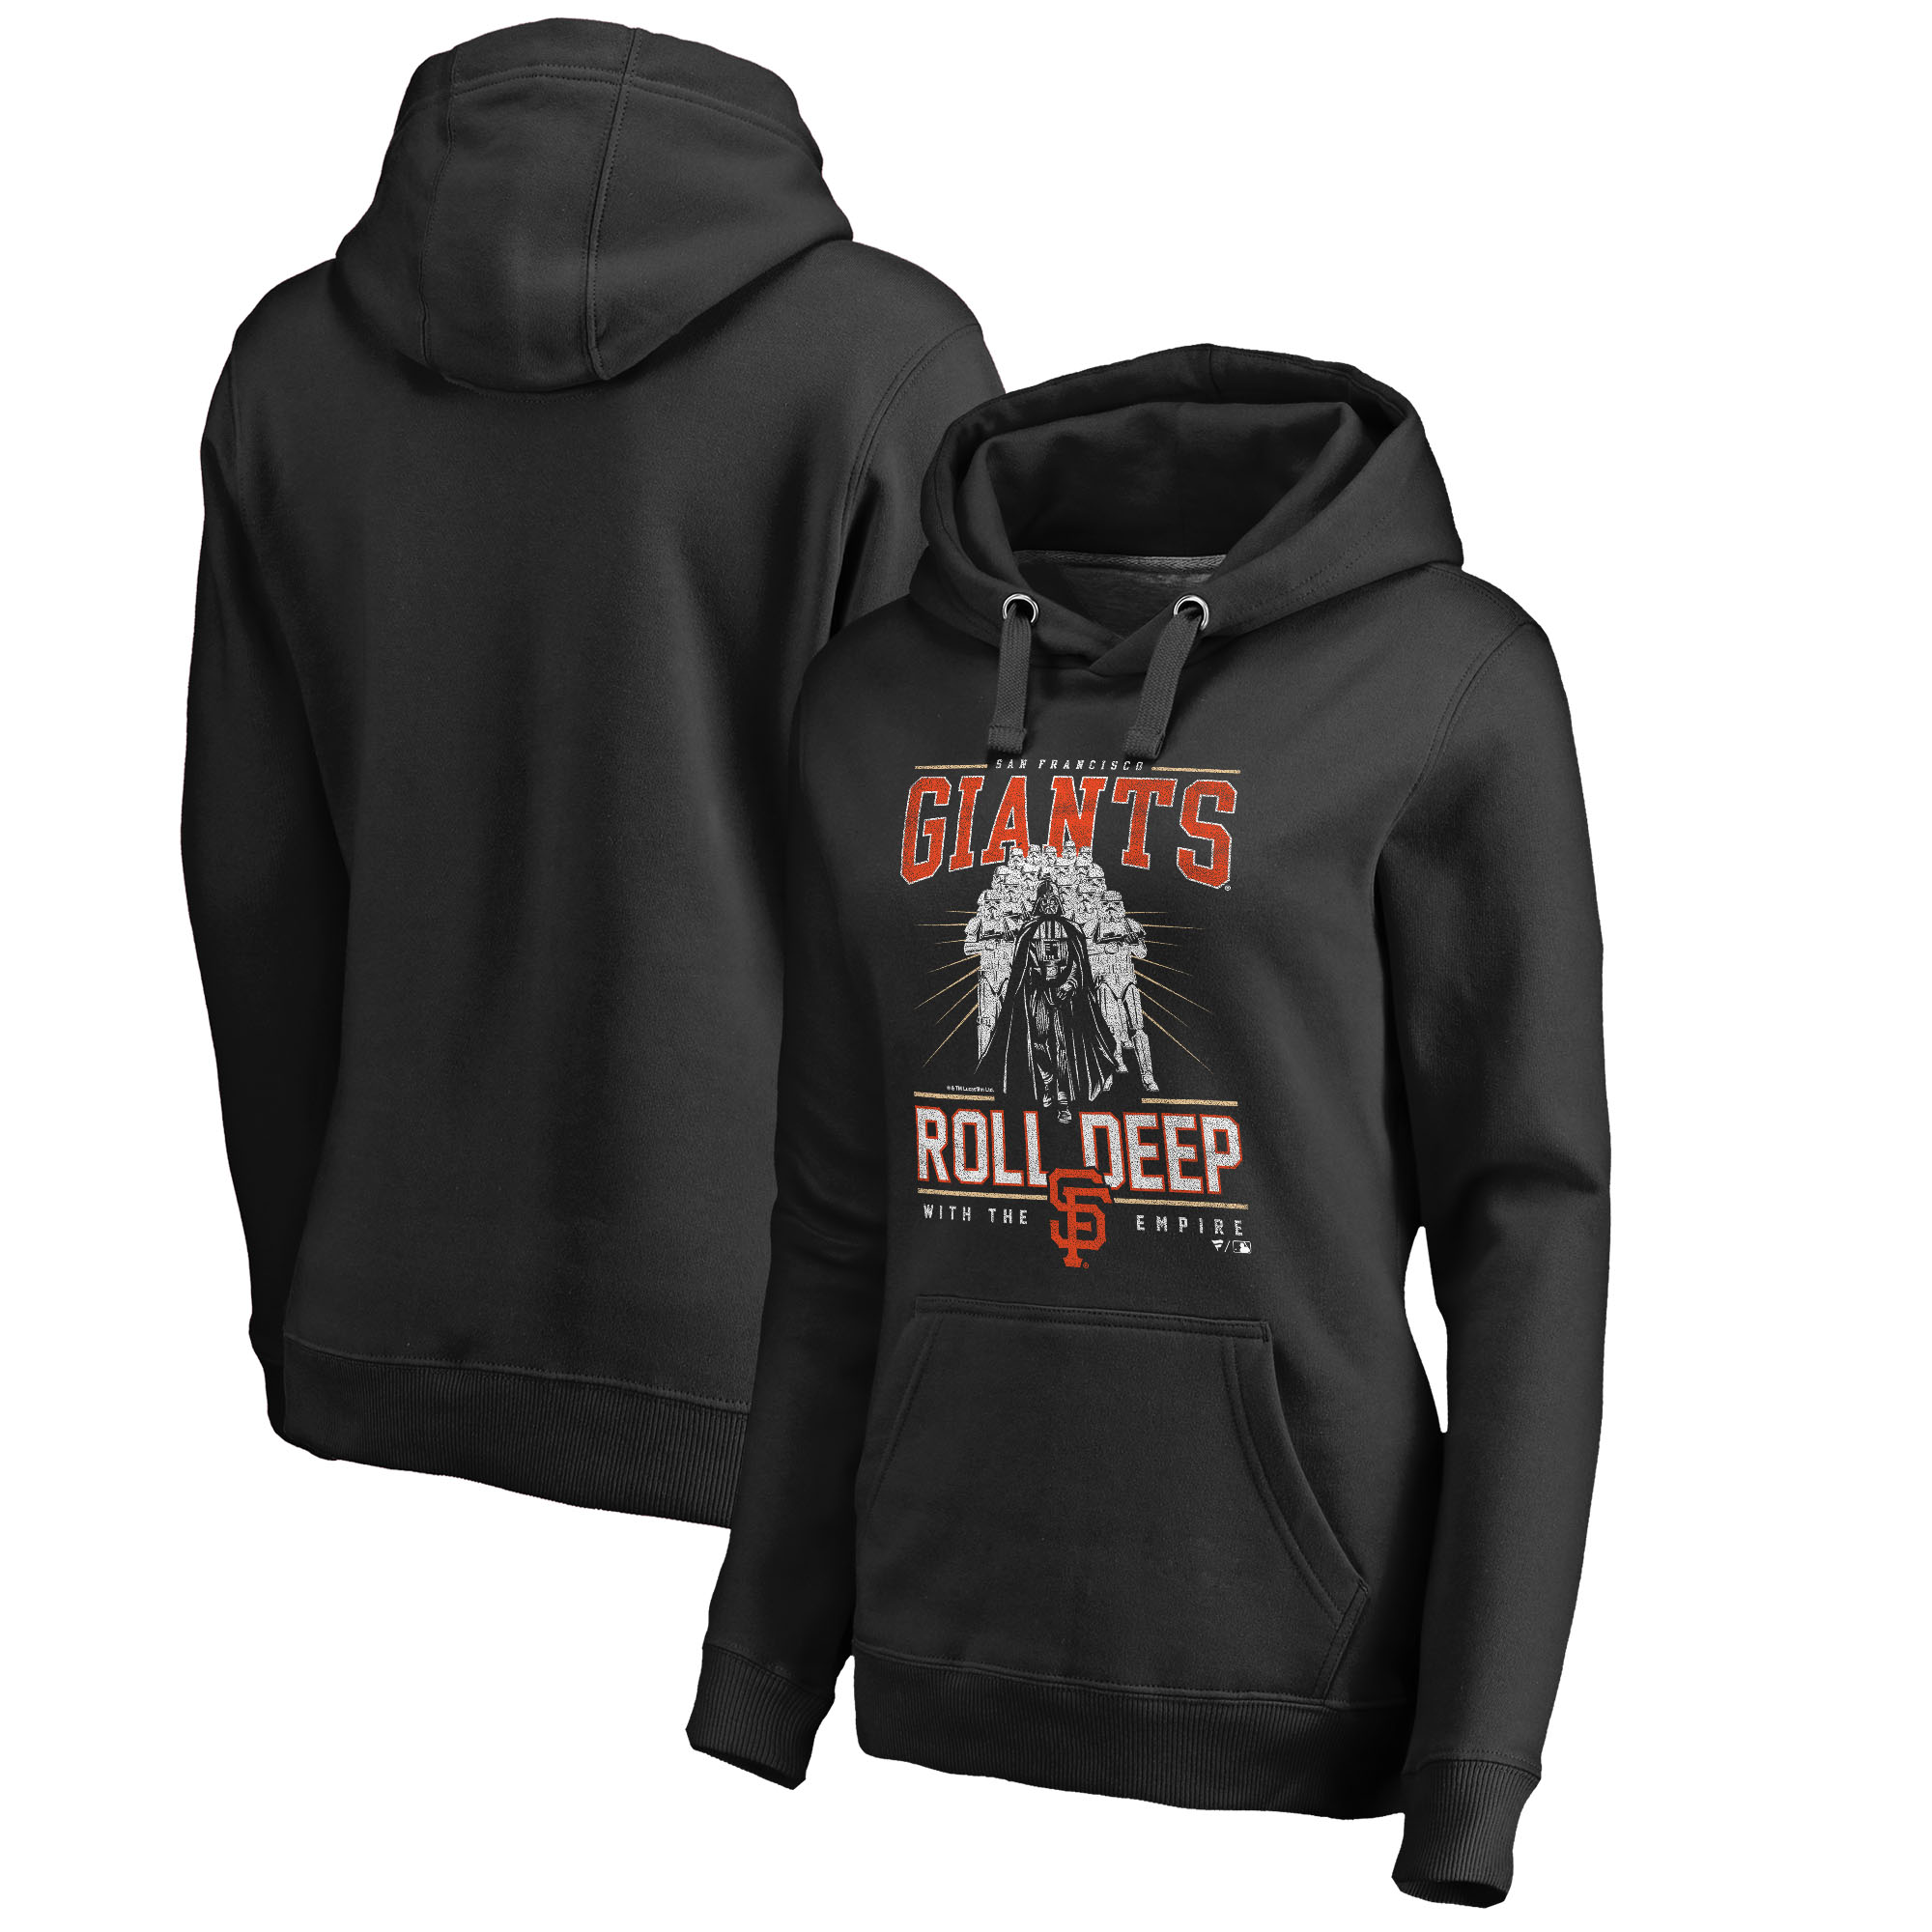 San Francisco Giants Fanatics Branded Women's Roll Deep with the Empire Pullover Hoodie - Black